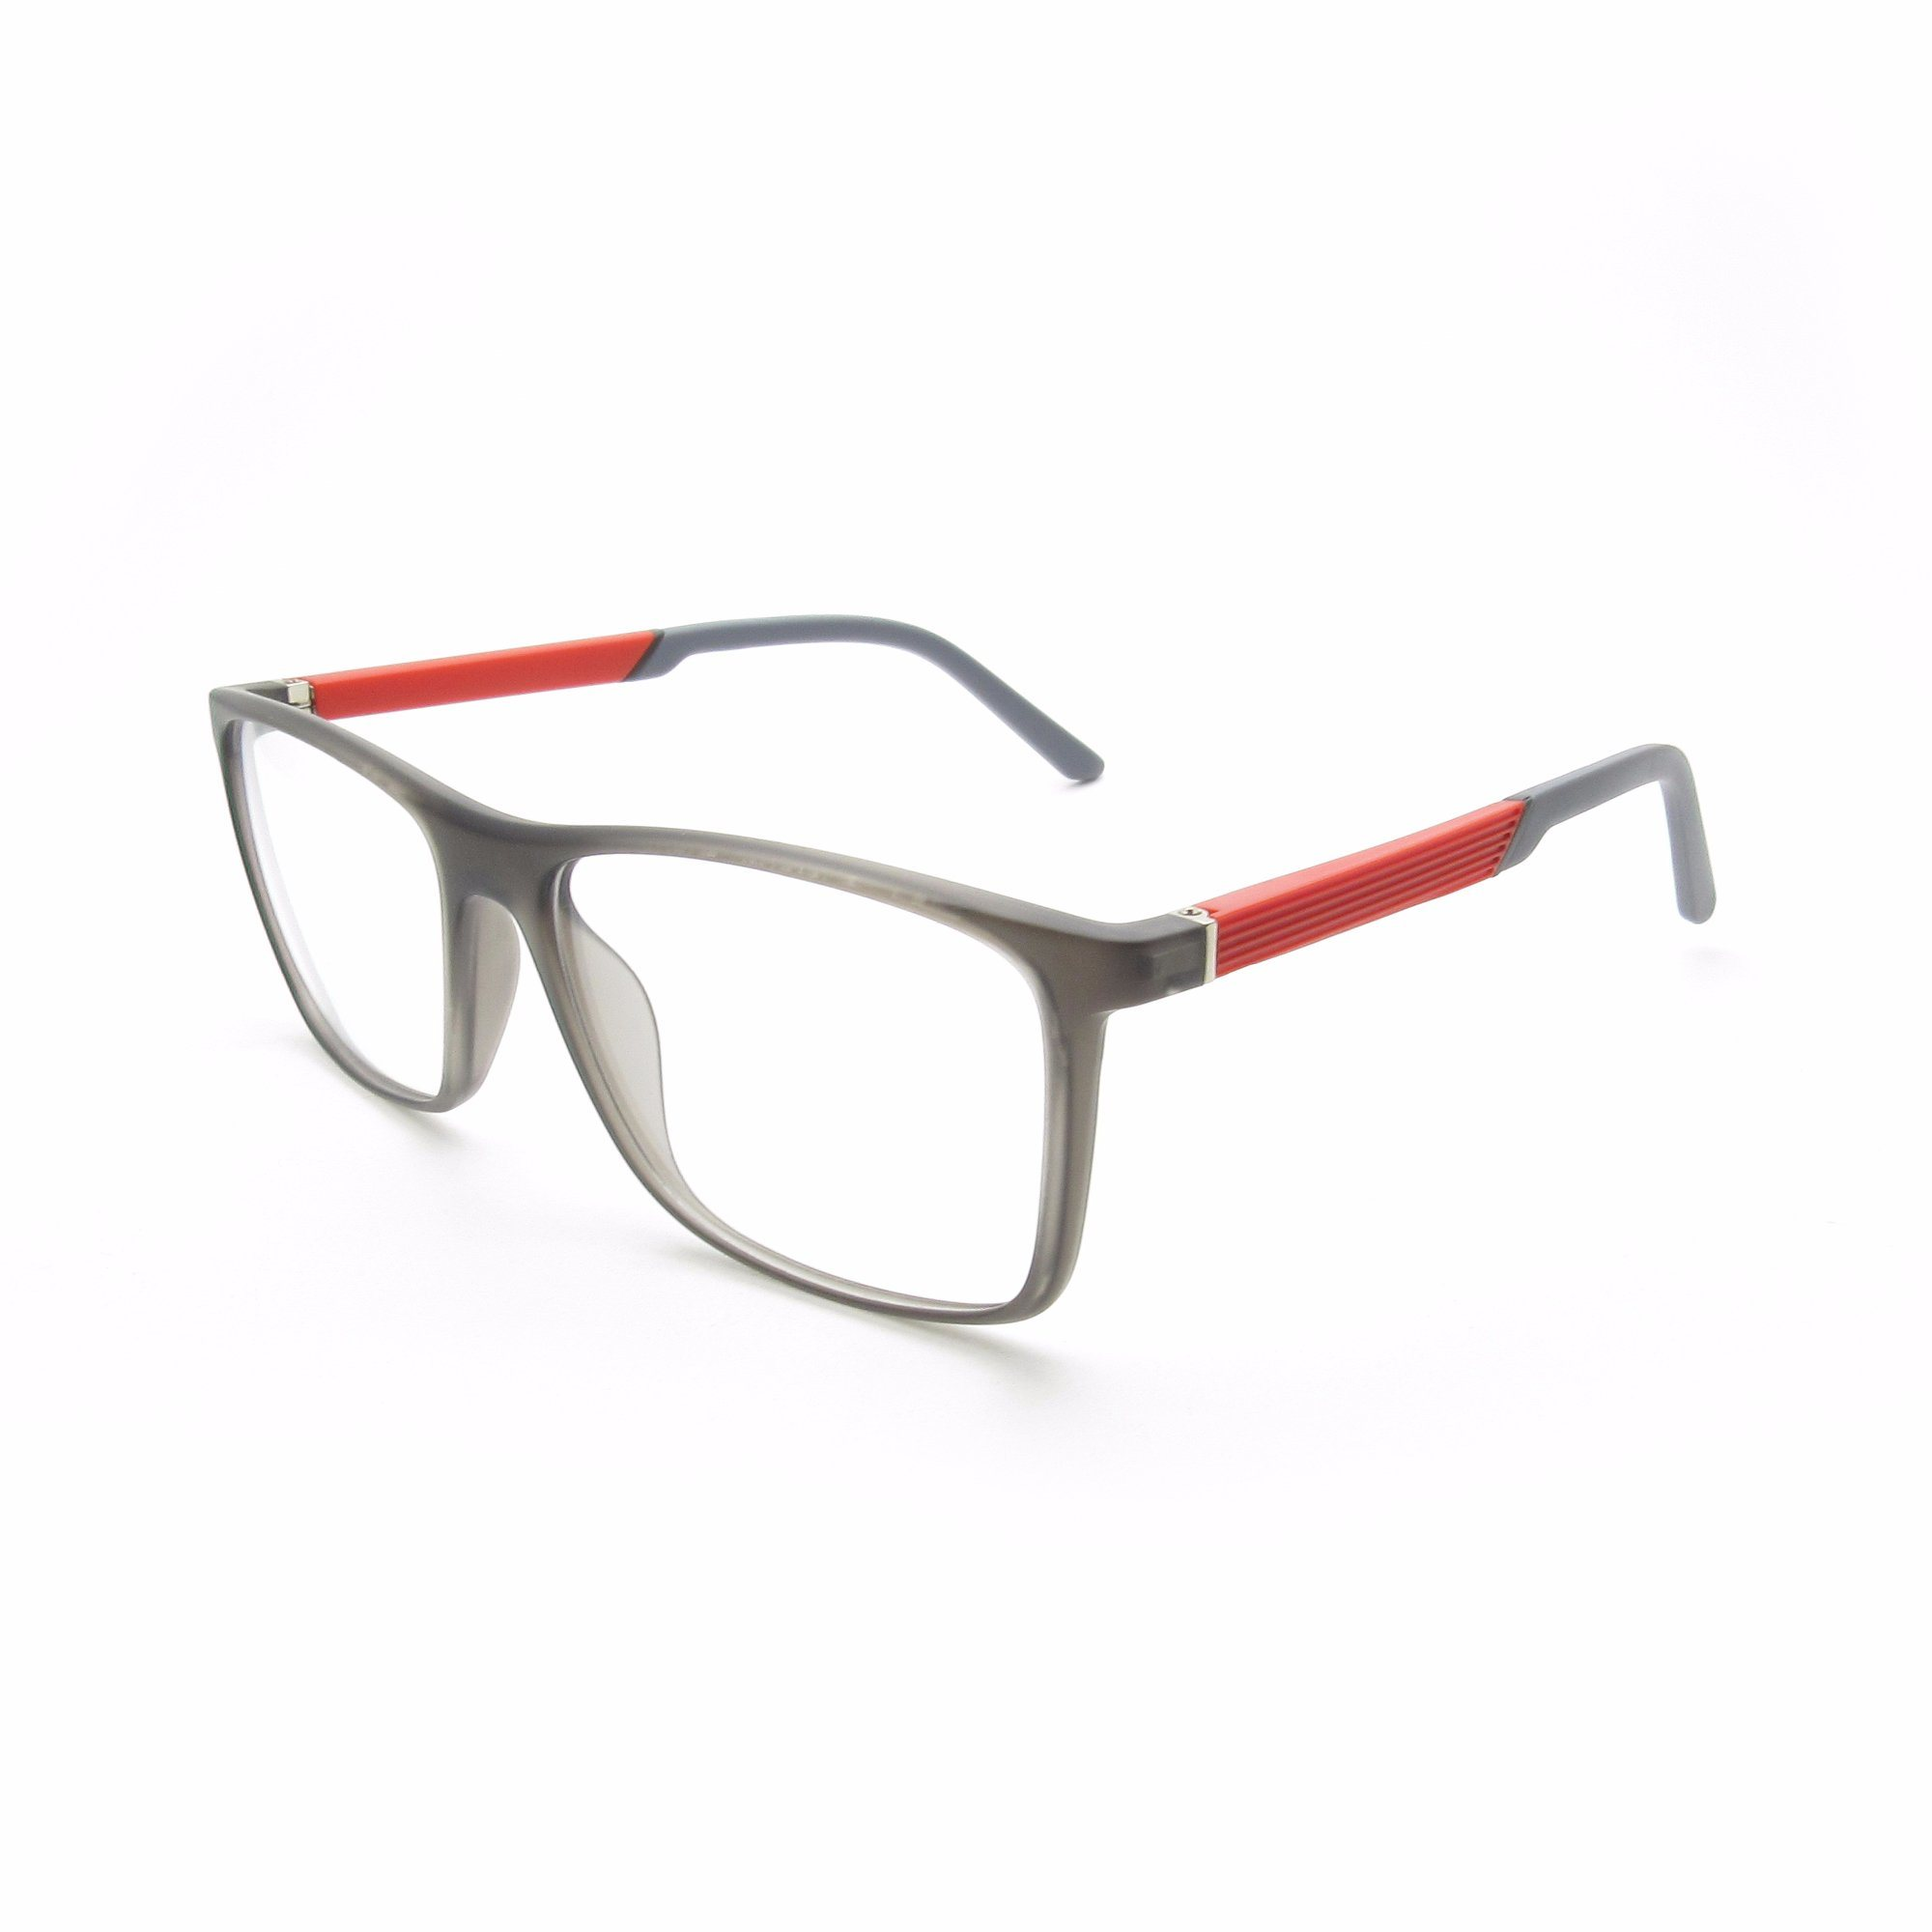 Supplier Direct Mz0105 Wear Resistance Comfortable Nose Support Eyewear Optical Frame